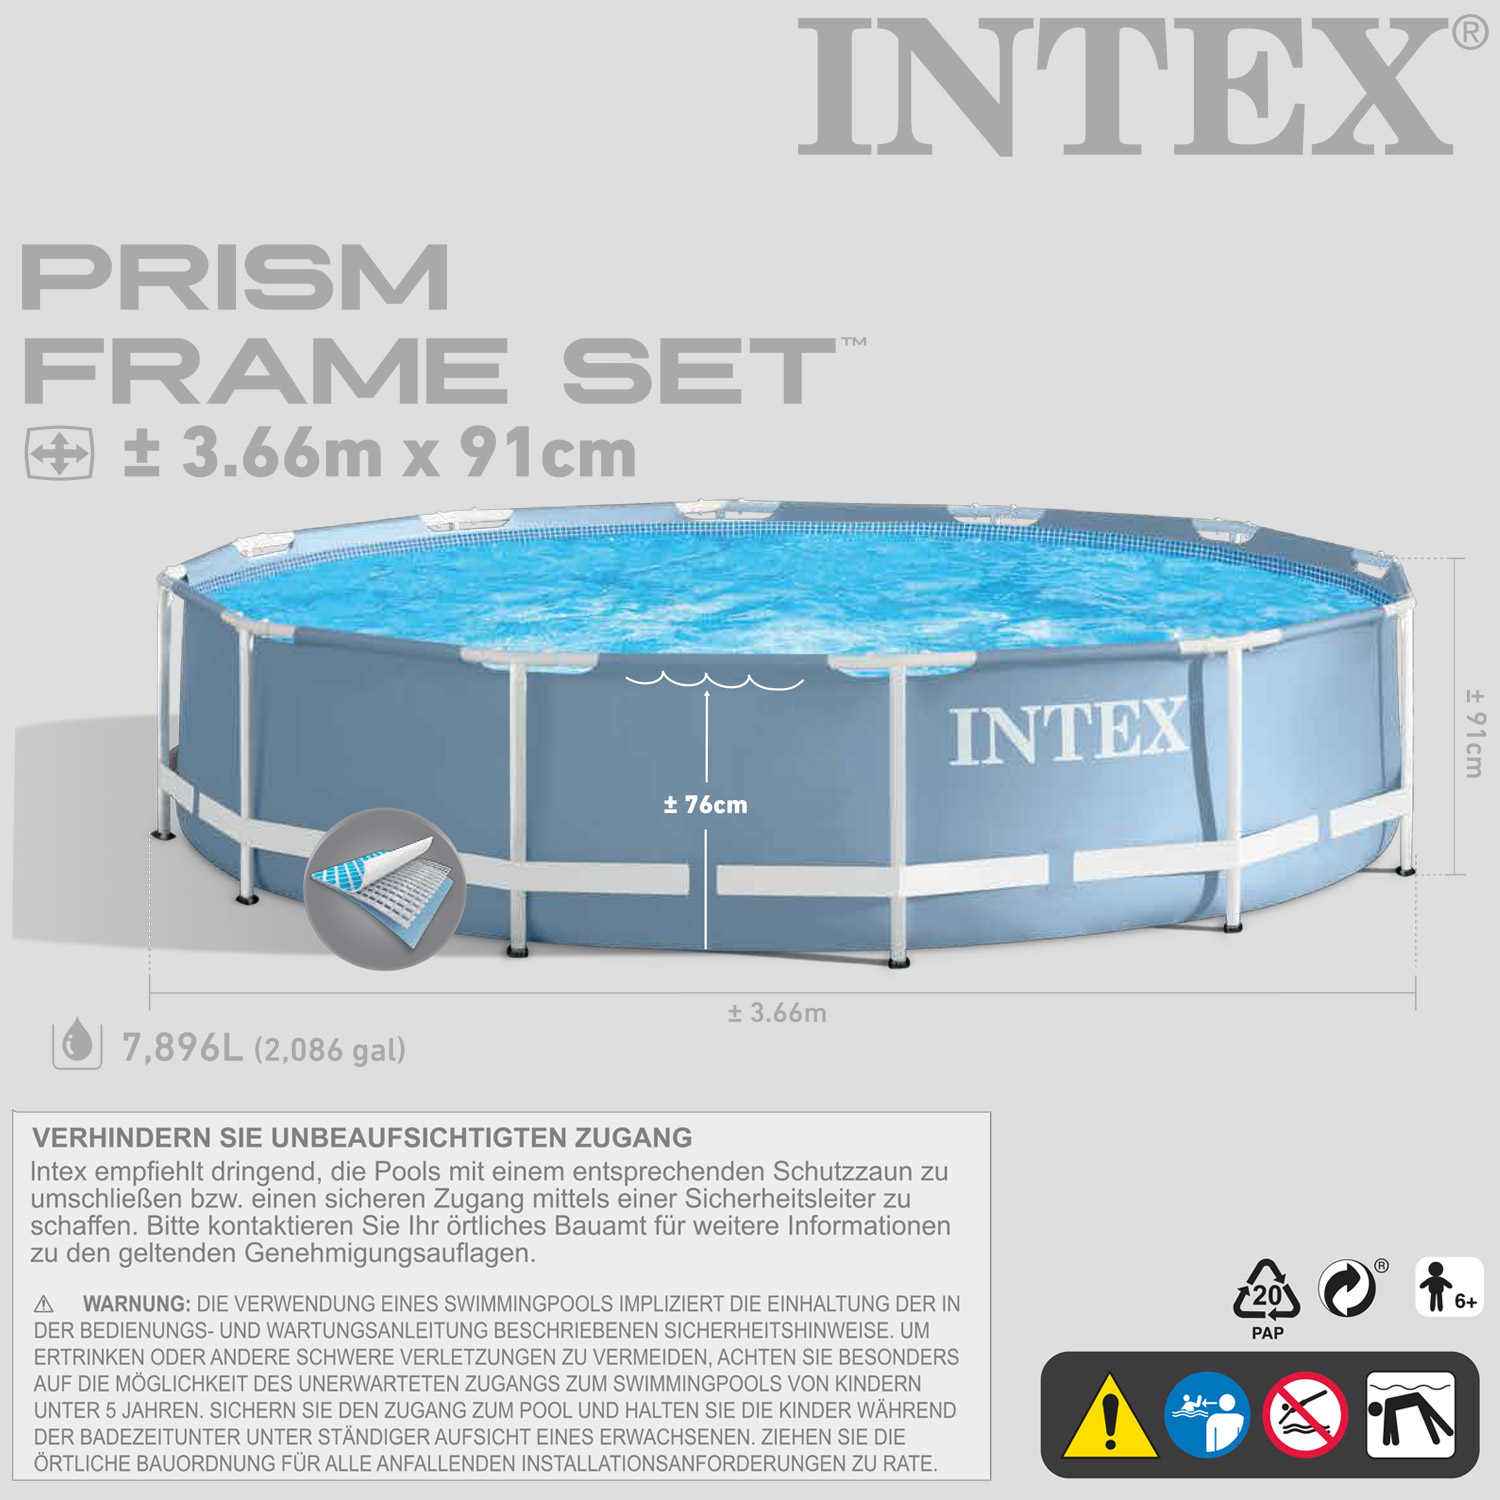 intex 366x91 schwimmbecken swimming pool schwimmbad frame. Black Bedroom Furniture Sets. Home Design Ideas